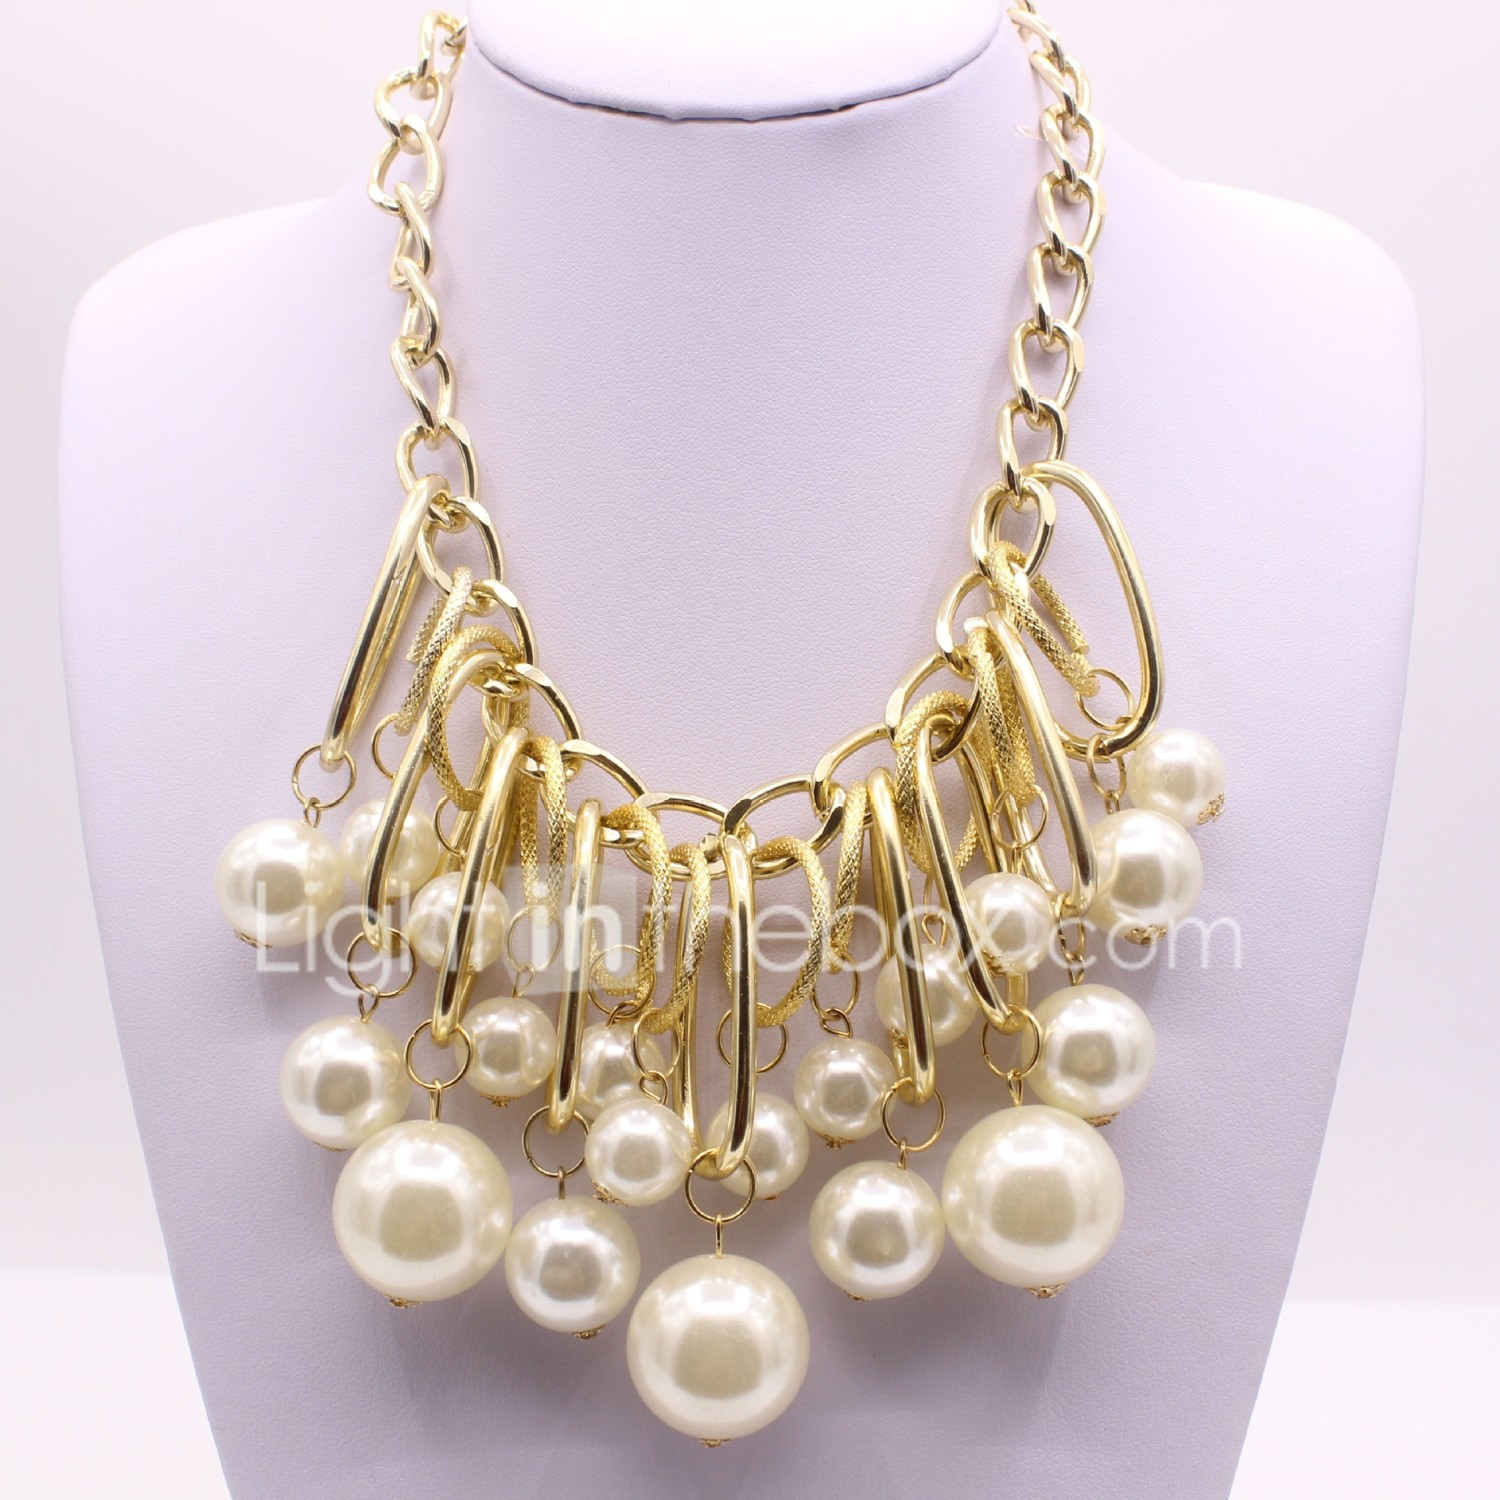 Women's Pendant Ladies Classic Fashion Imitation Pearl Alloy Gold Necklace  Jewelry For Engagement Ceremony